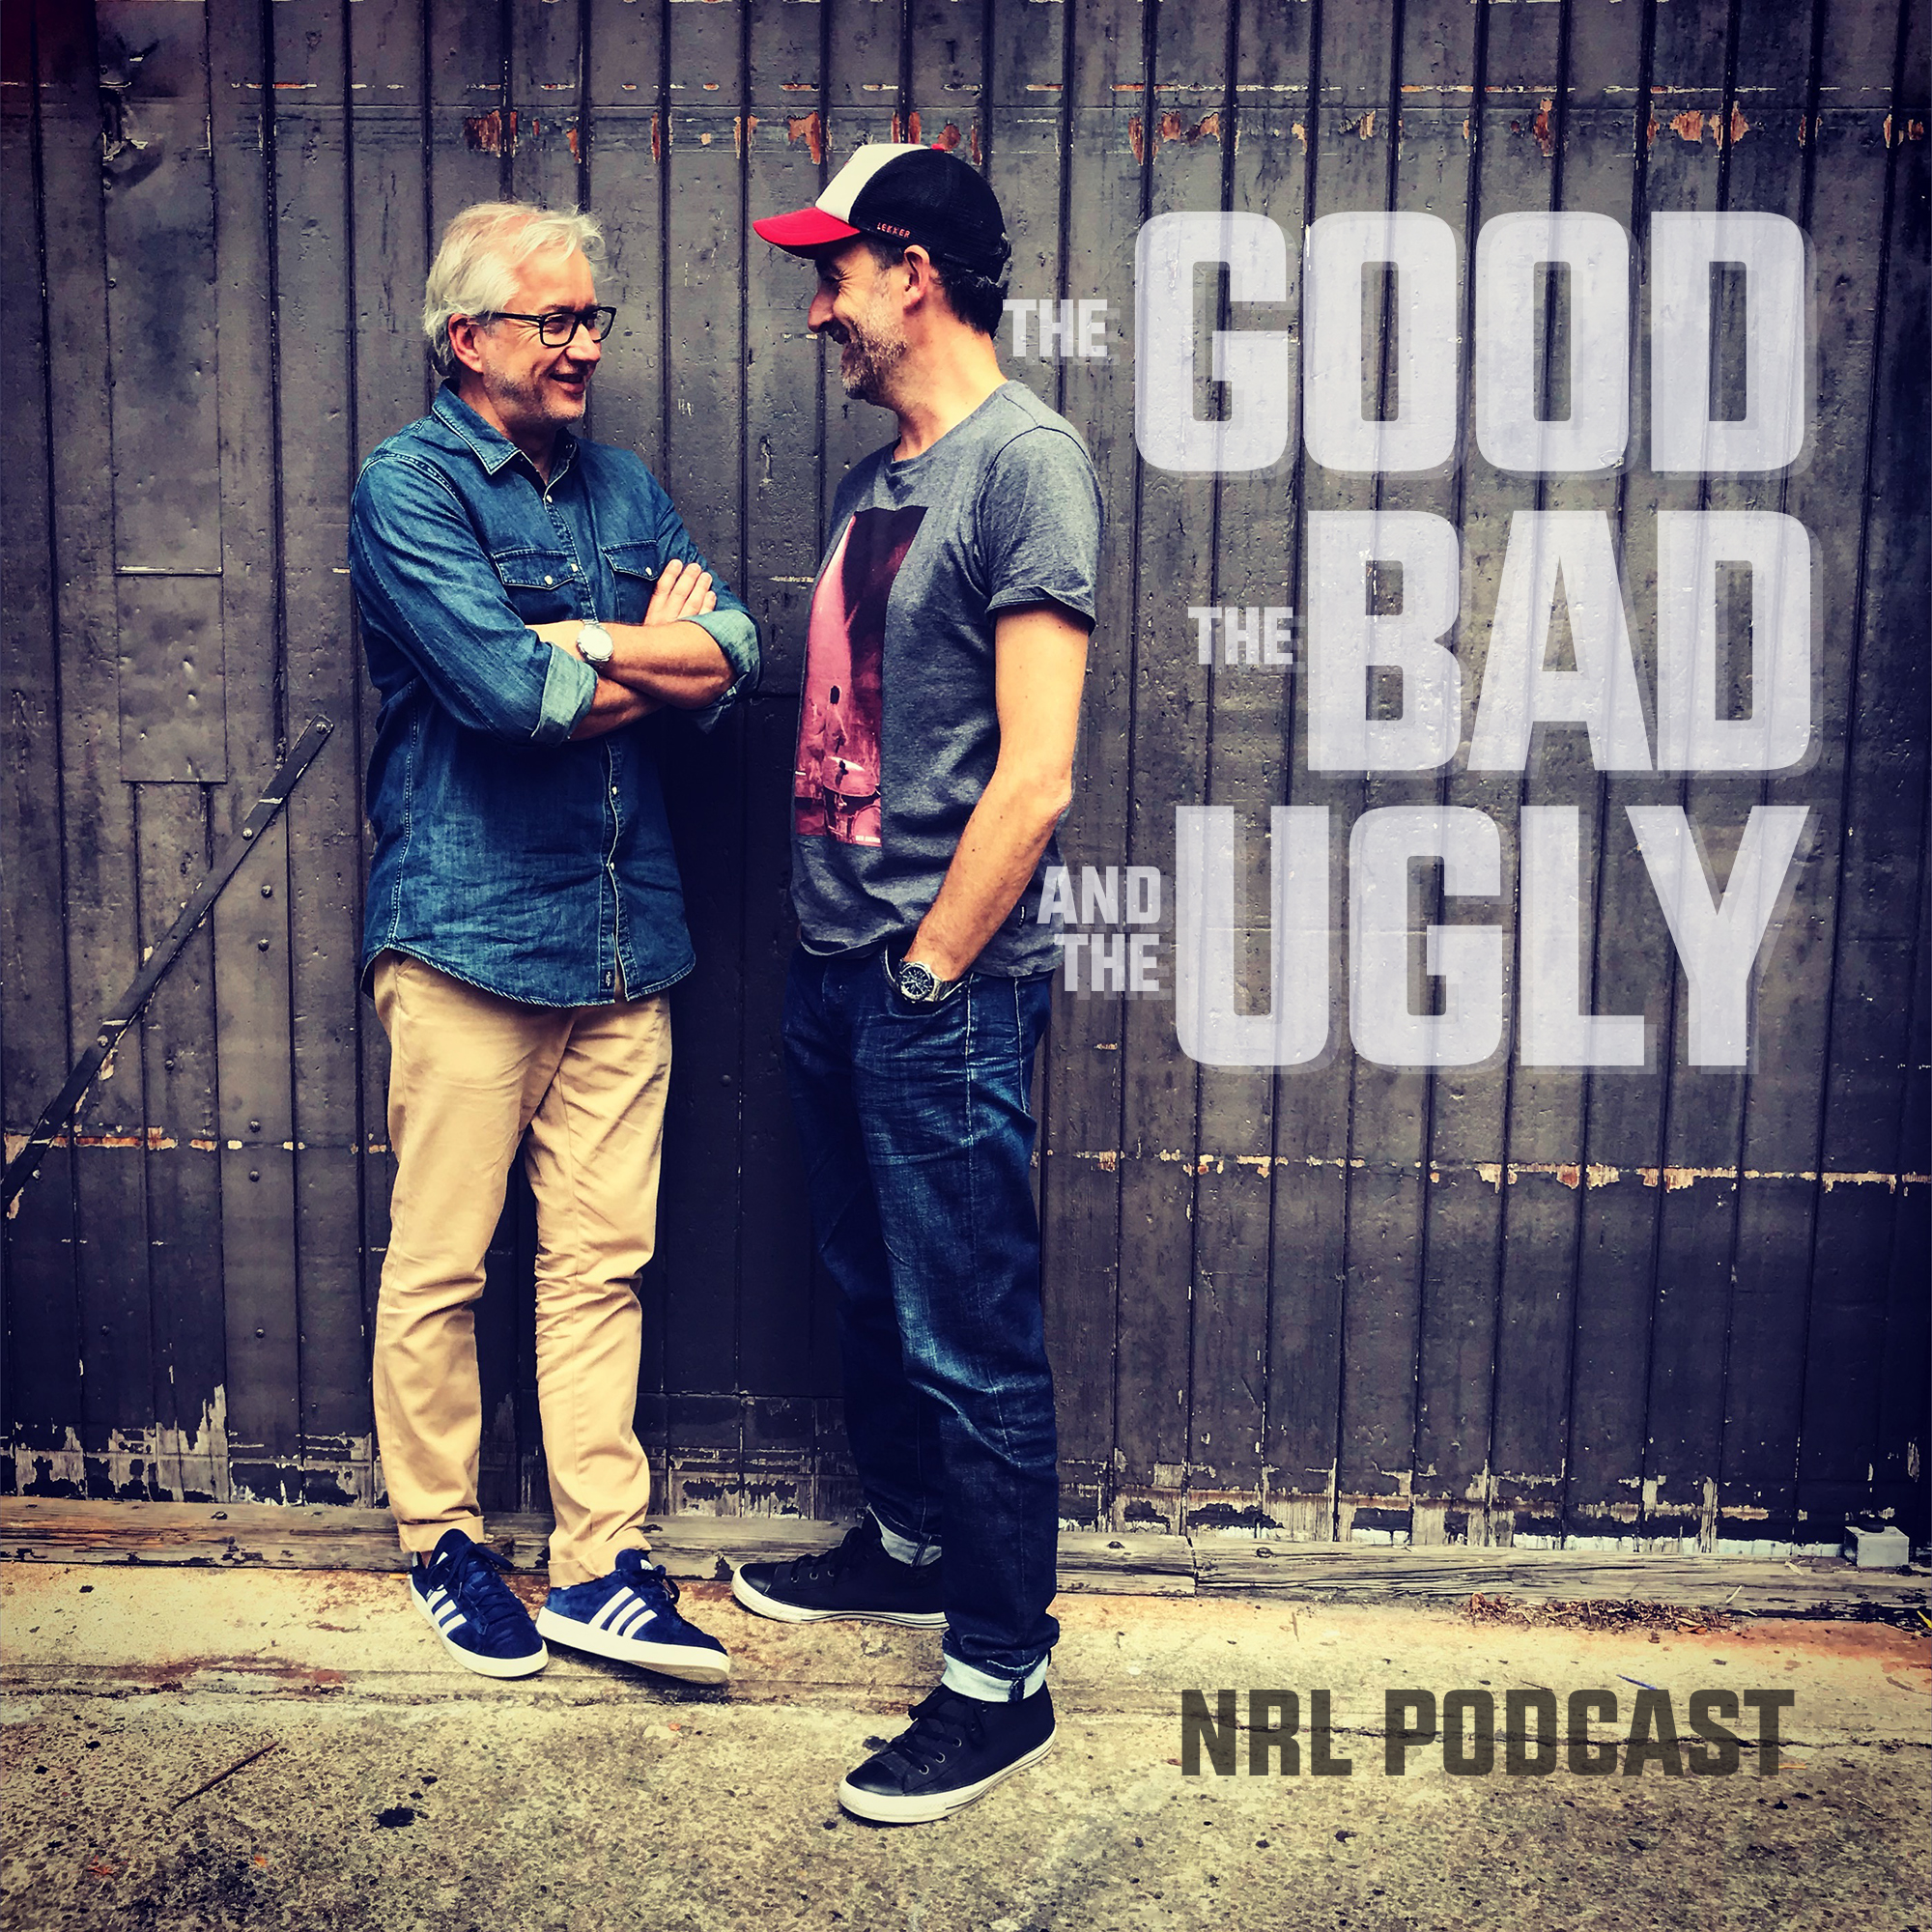 d7894d6a37f THE GOOD, THE BAD AND THE UGLY - NRL PODCAST - Whooshkaa